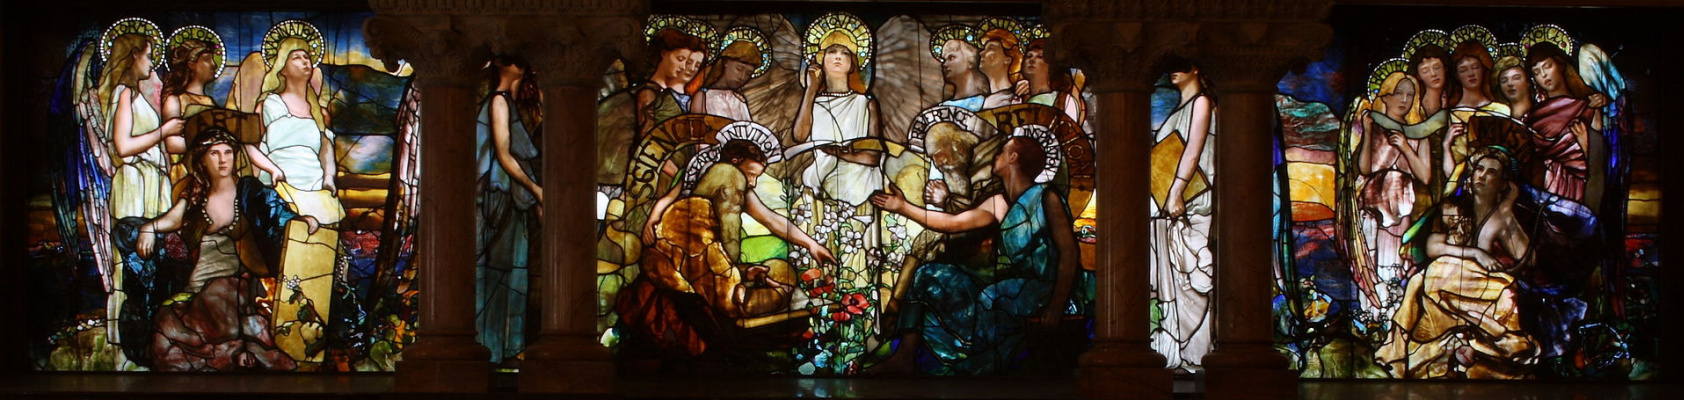 Louis Comfort Tiffany. Education (Chittenden Memorial Stained Glass Window). Yale university